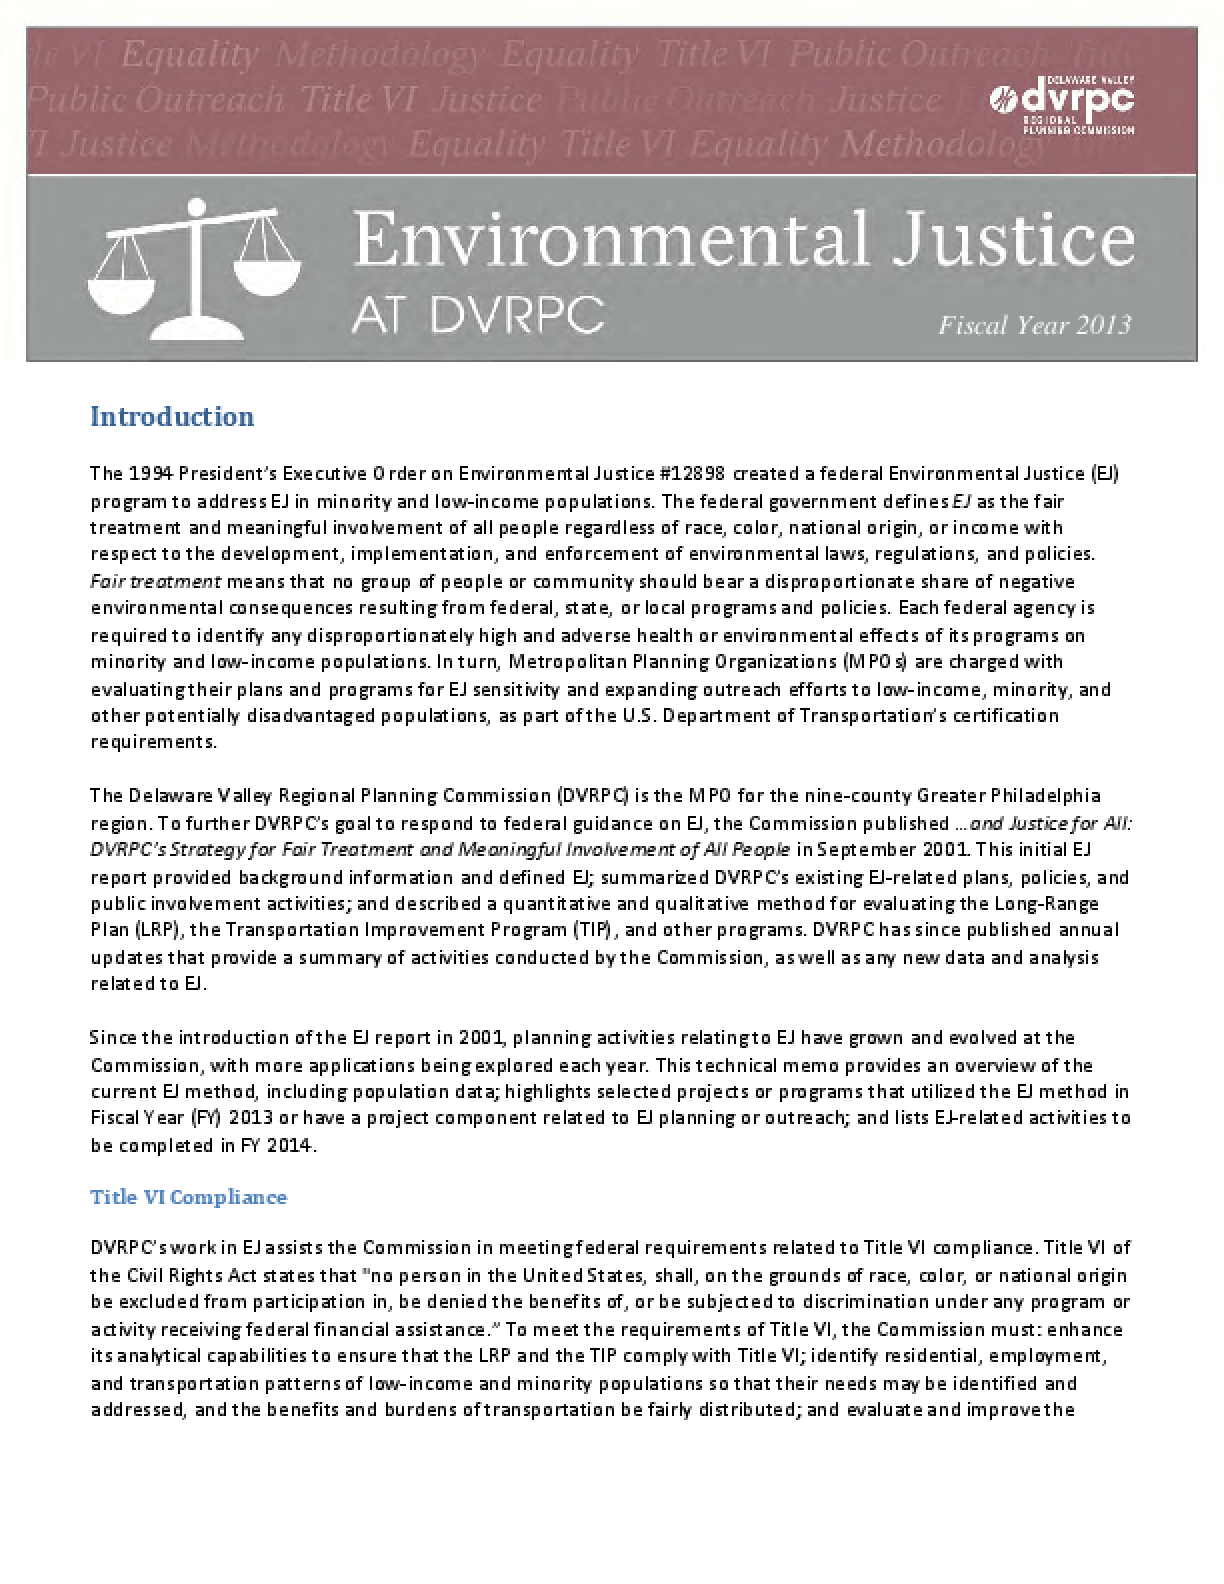 Environmental Justice at DVRPC - FY2013